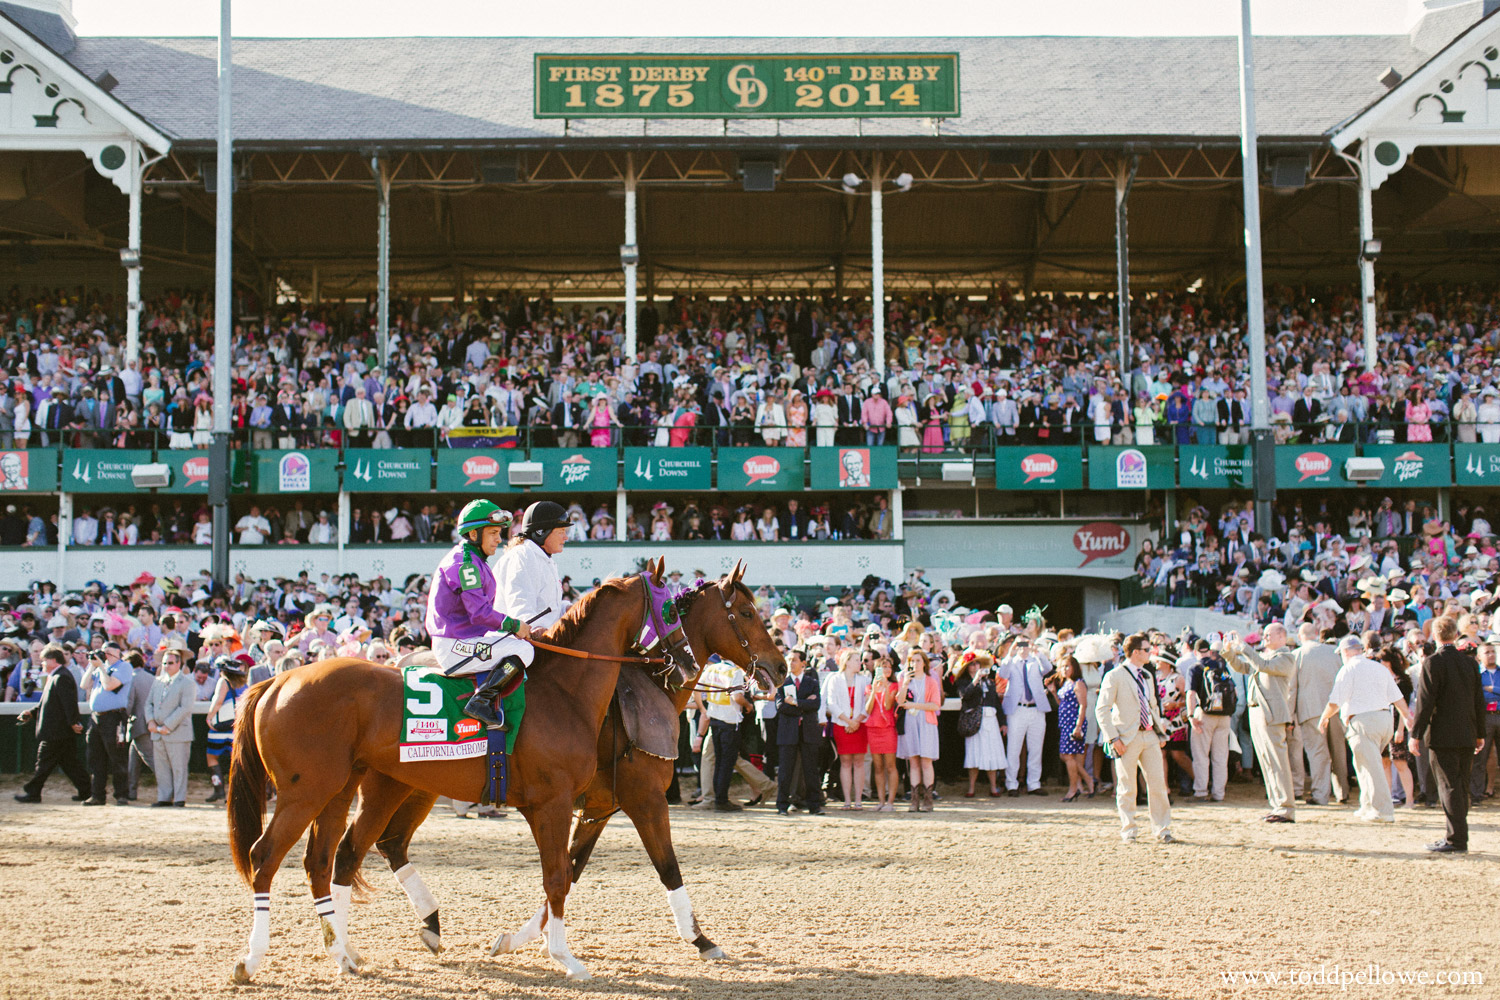 California Chrome at Churchill Downs before Derby